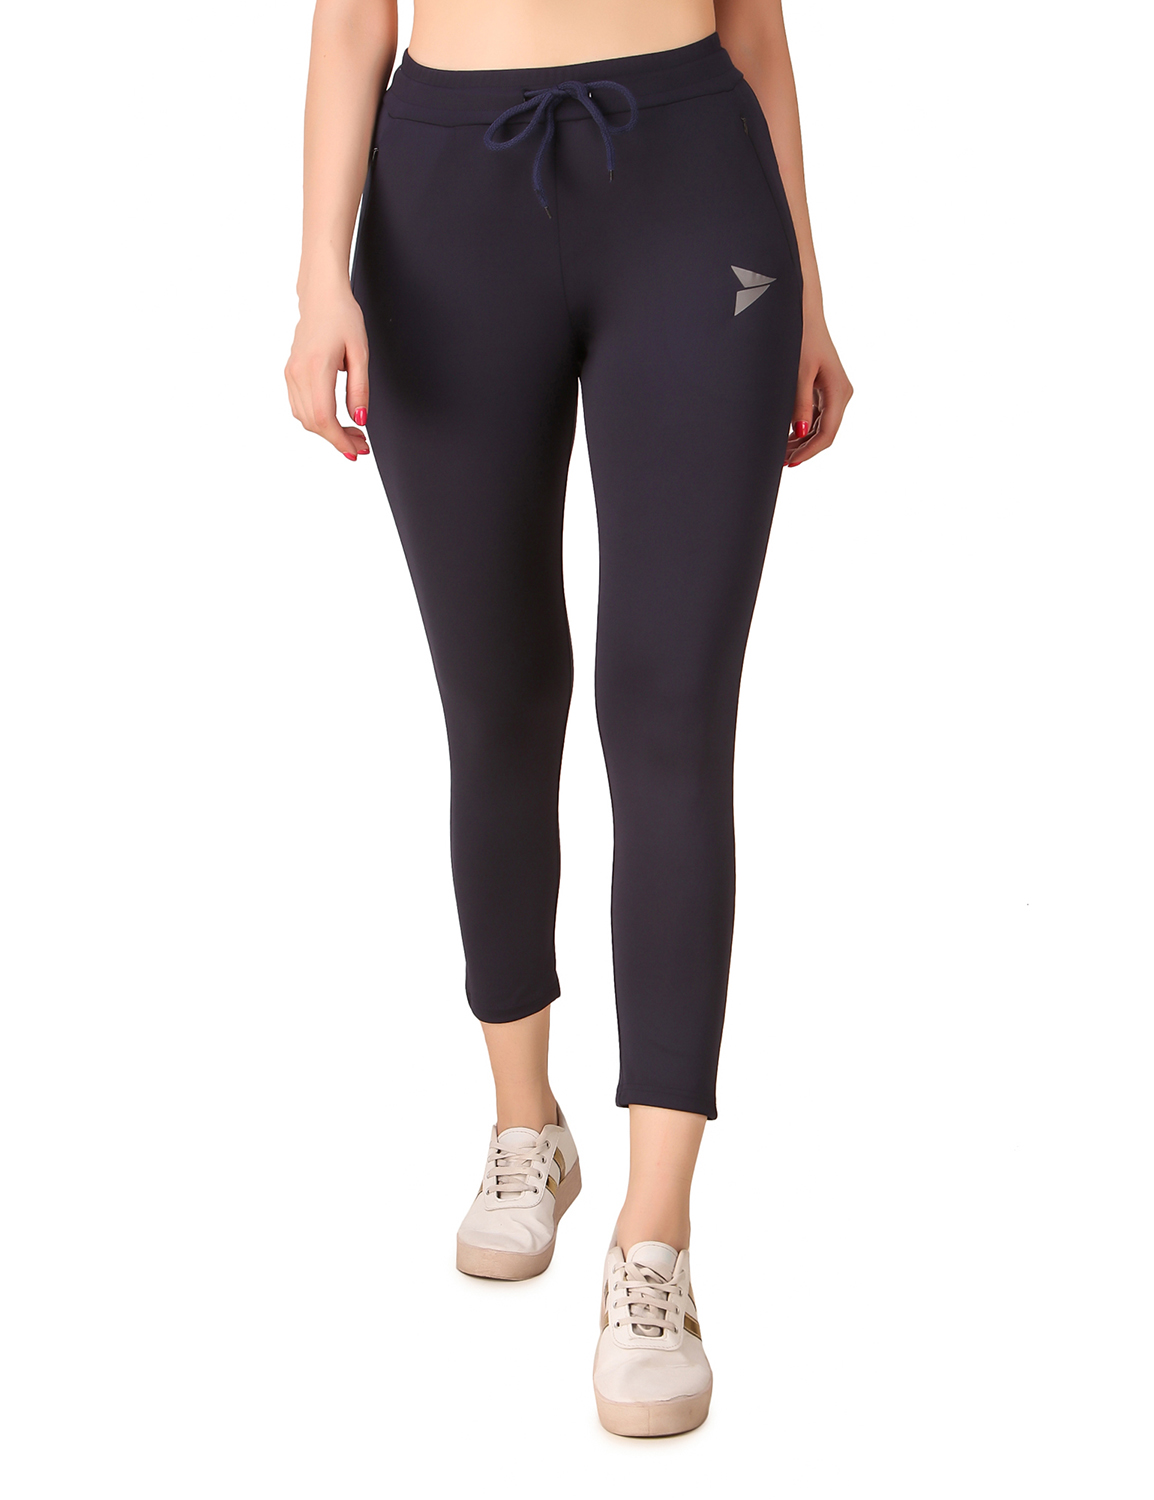 Fitinc | Fitinc Women Navy Blue Trackpant with Concealed Zipper Pockets and Drawstring